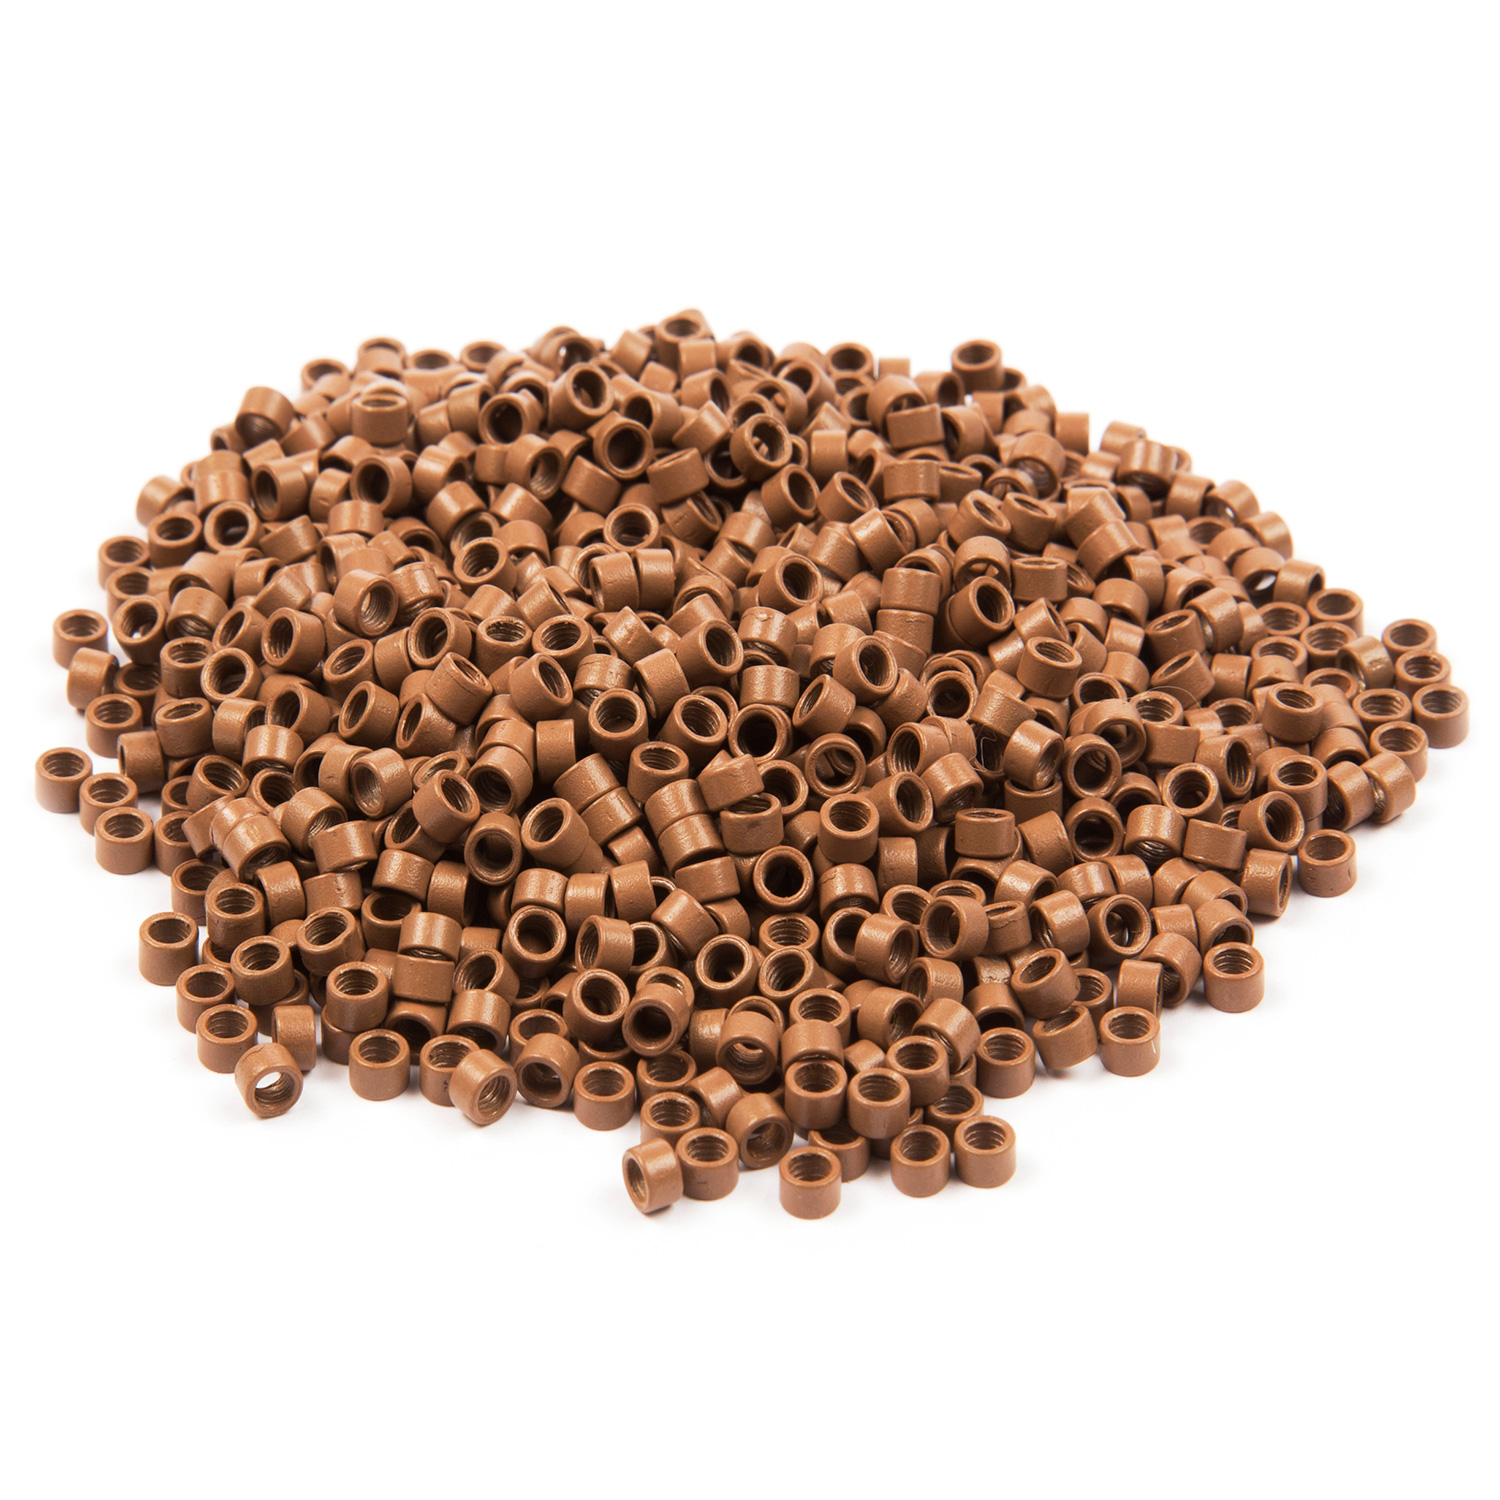 1000 ct. Med Size Lite Brown Beads